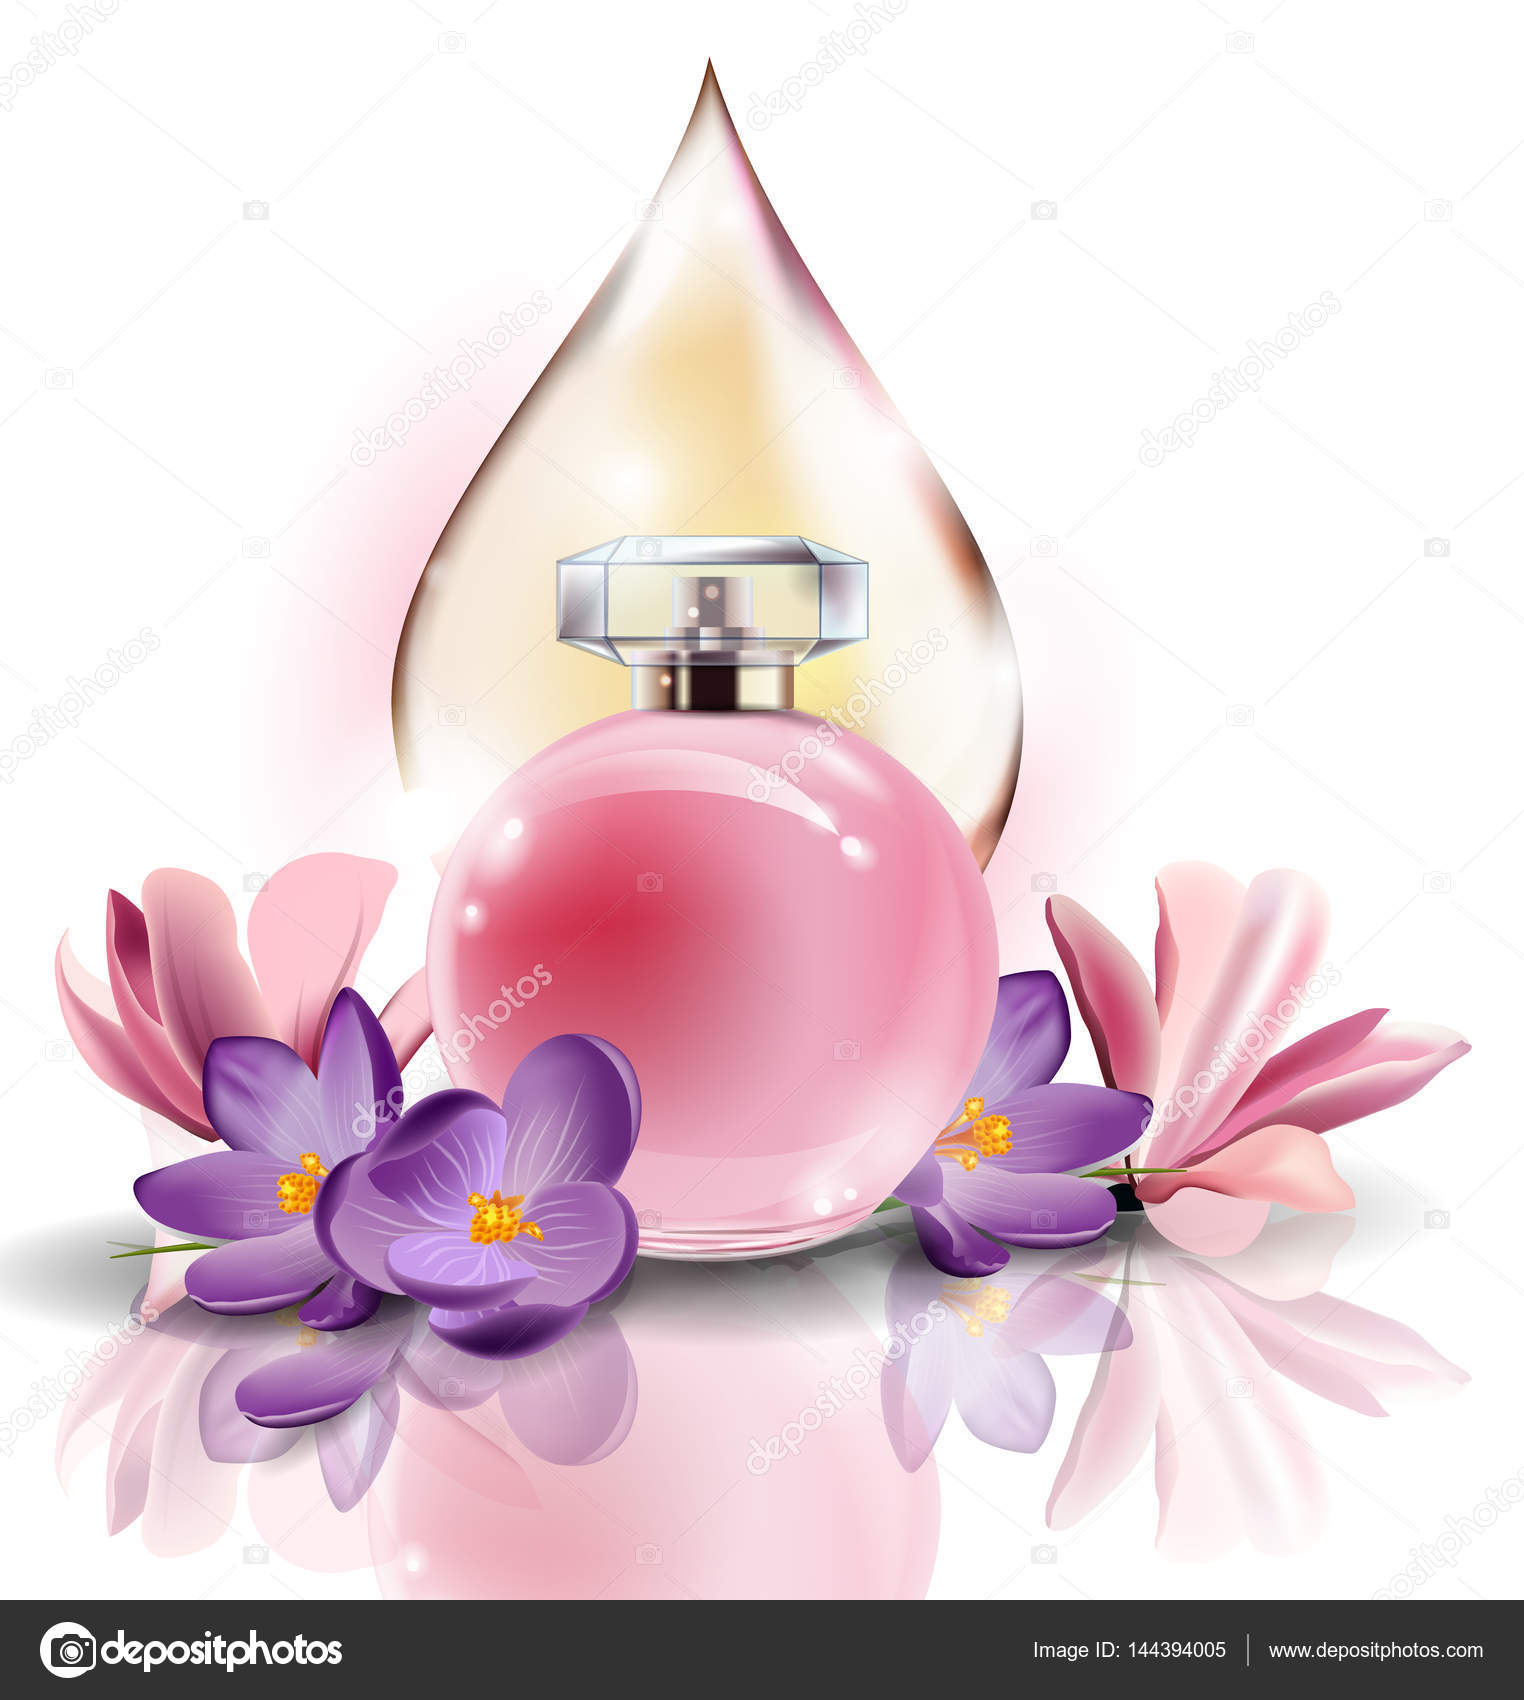 Pink bottle womens perfume with spring flowers crocuses and with a pink bottle womens perfume with spring flowers crocuses and with a drop of pink color mightylinksfo Gallery